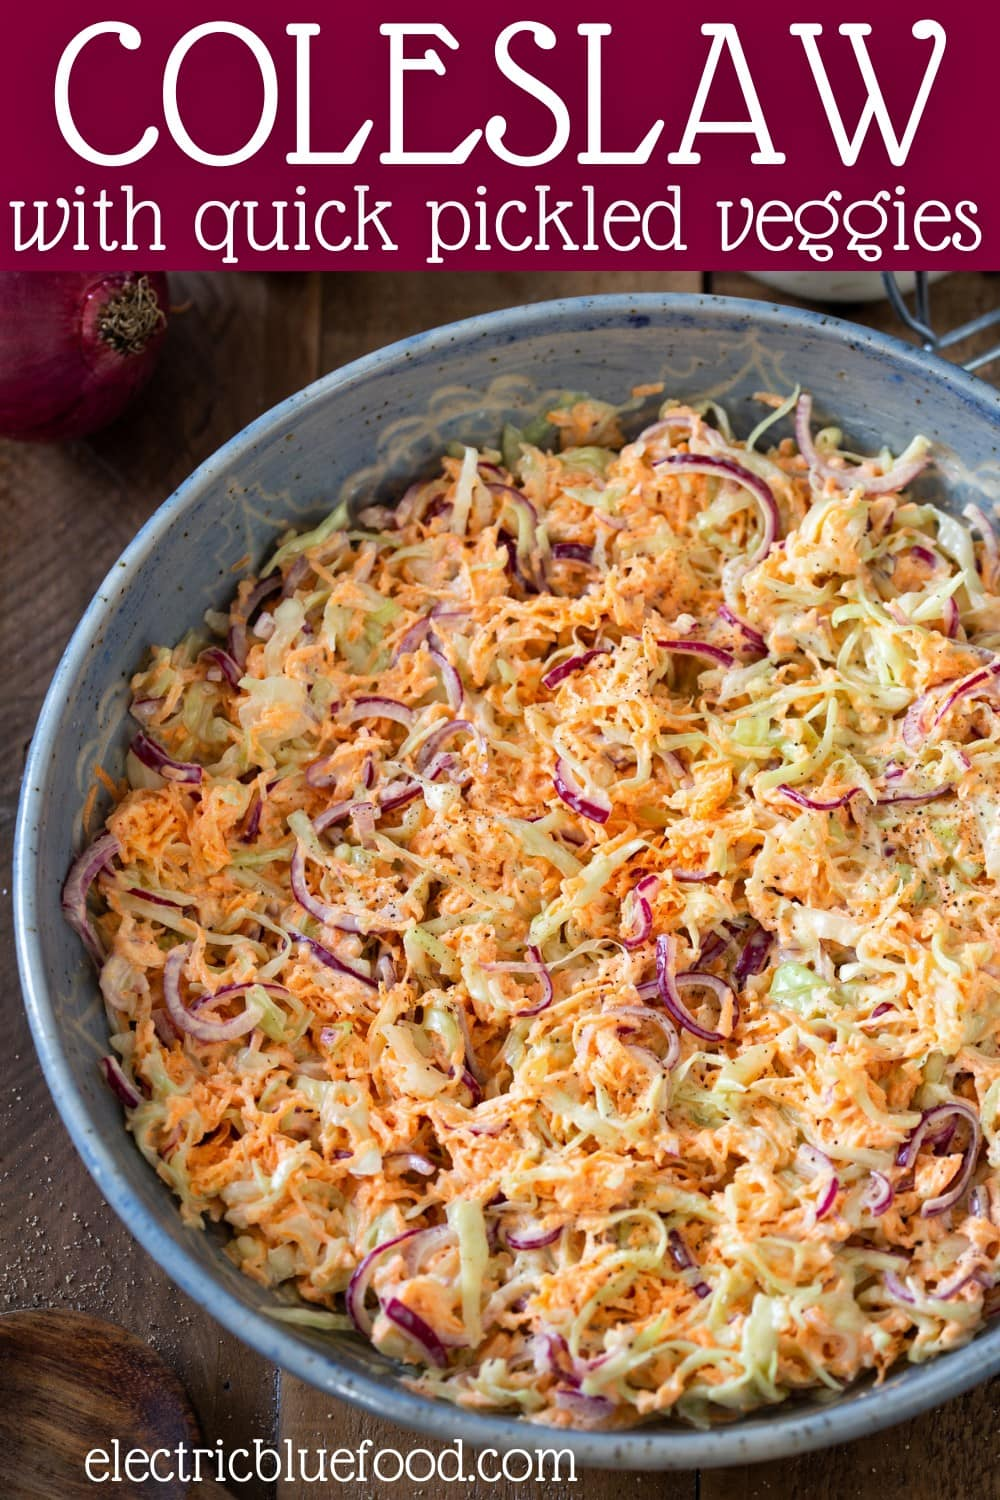 The best coleslaw recipe with quick pickled vegetables. Creamy, full of flavour, this coleslaw is never watery and goes well with anything.